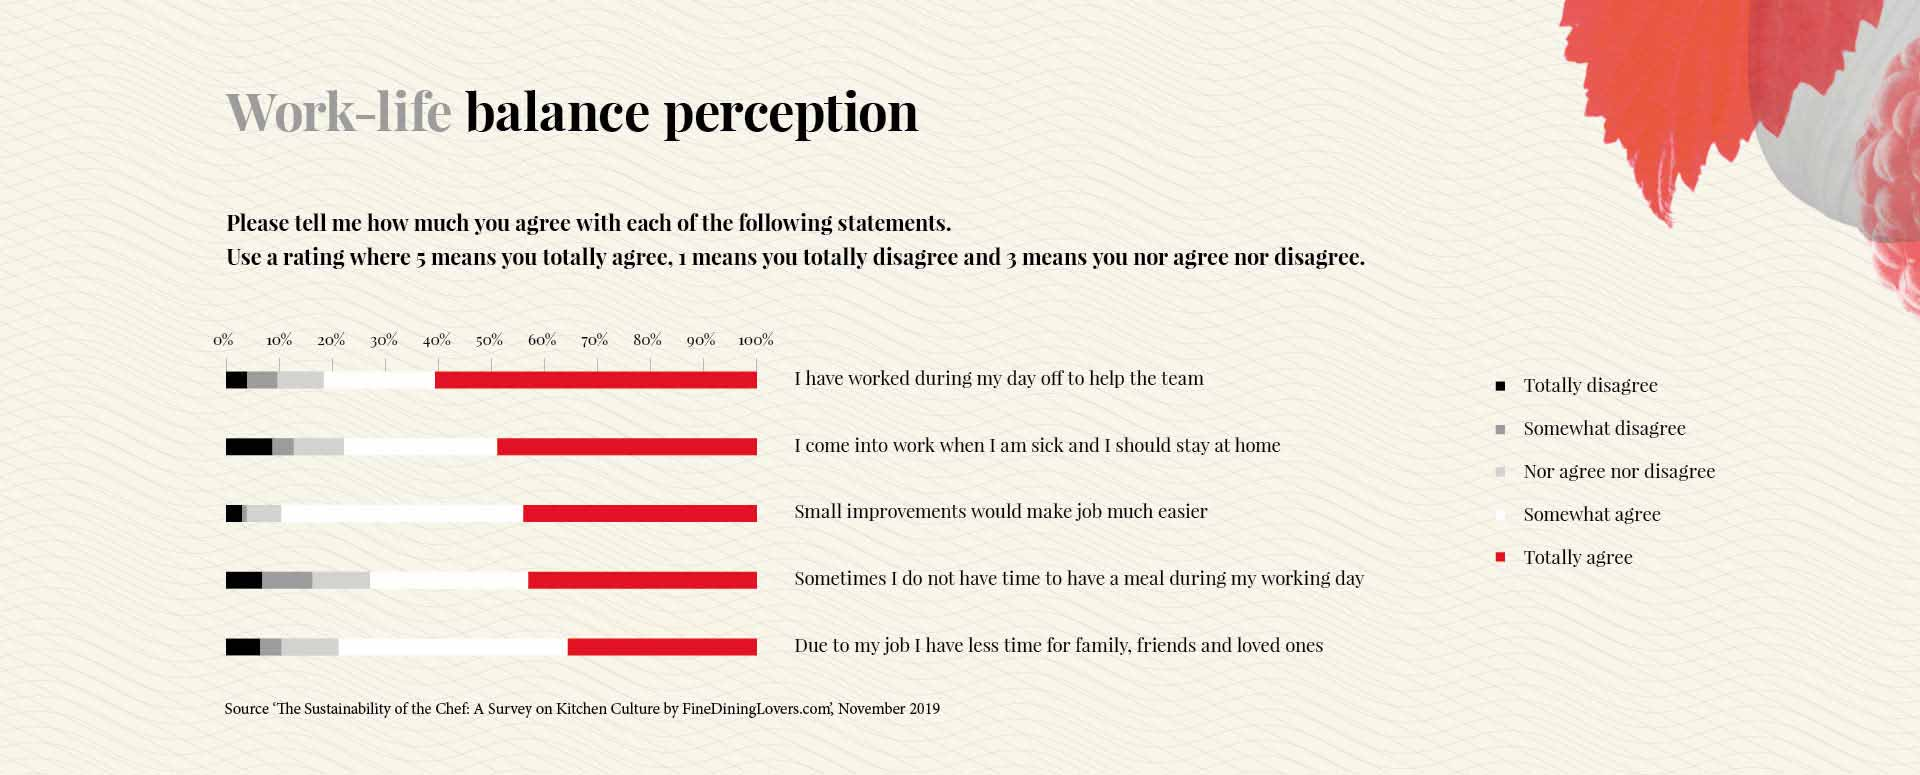 Survey on kitchen culture: Work-life balance perception